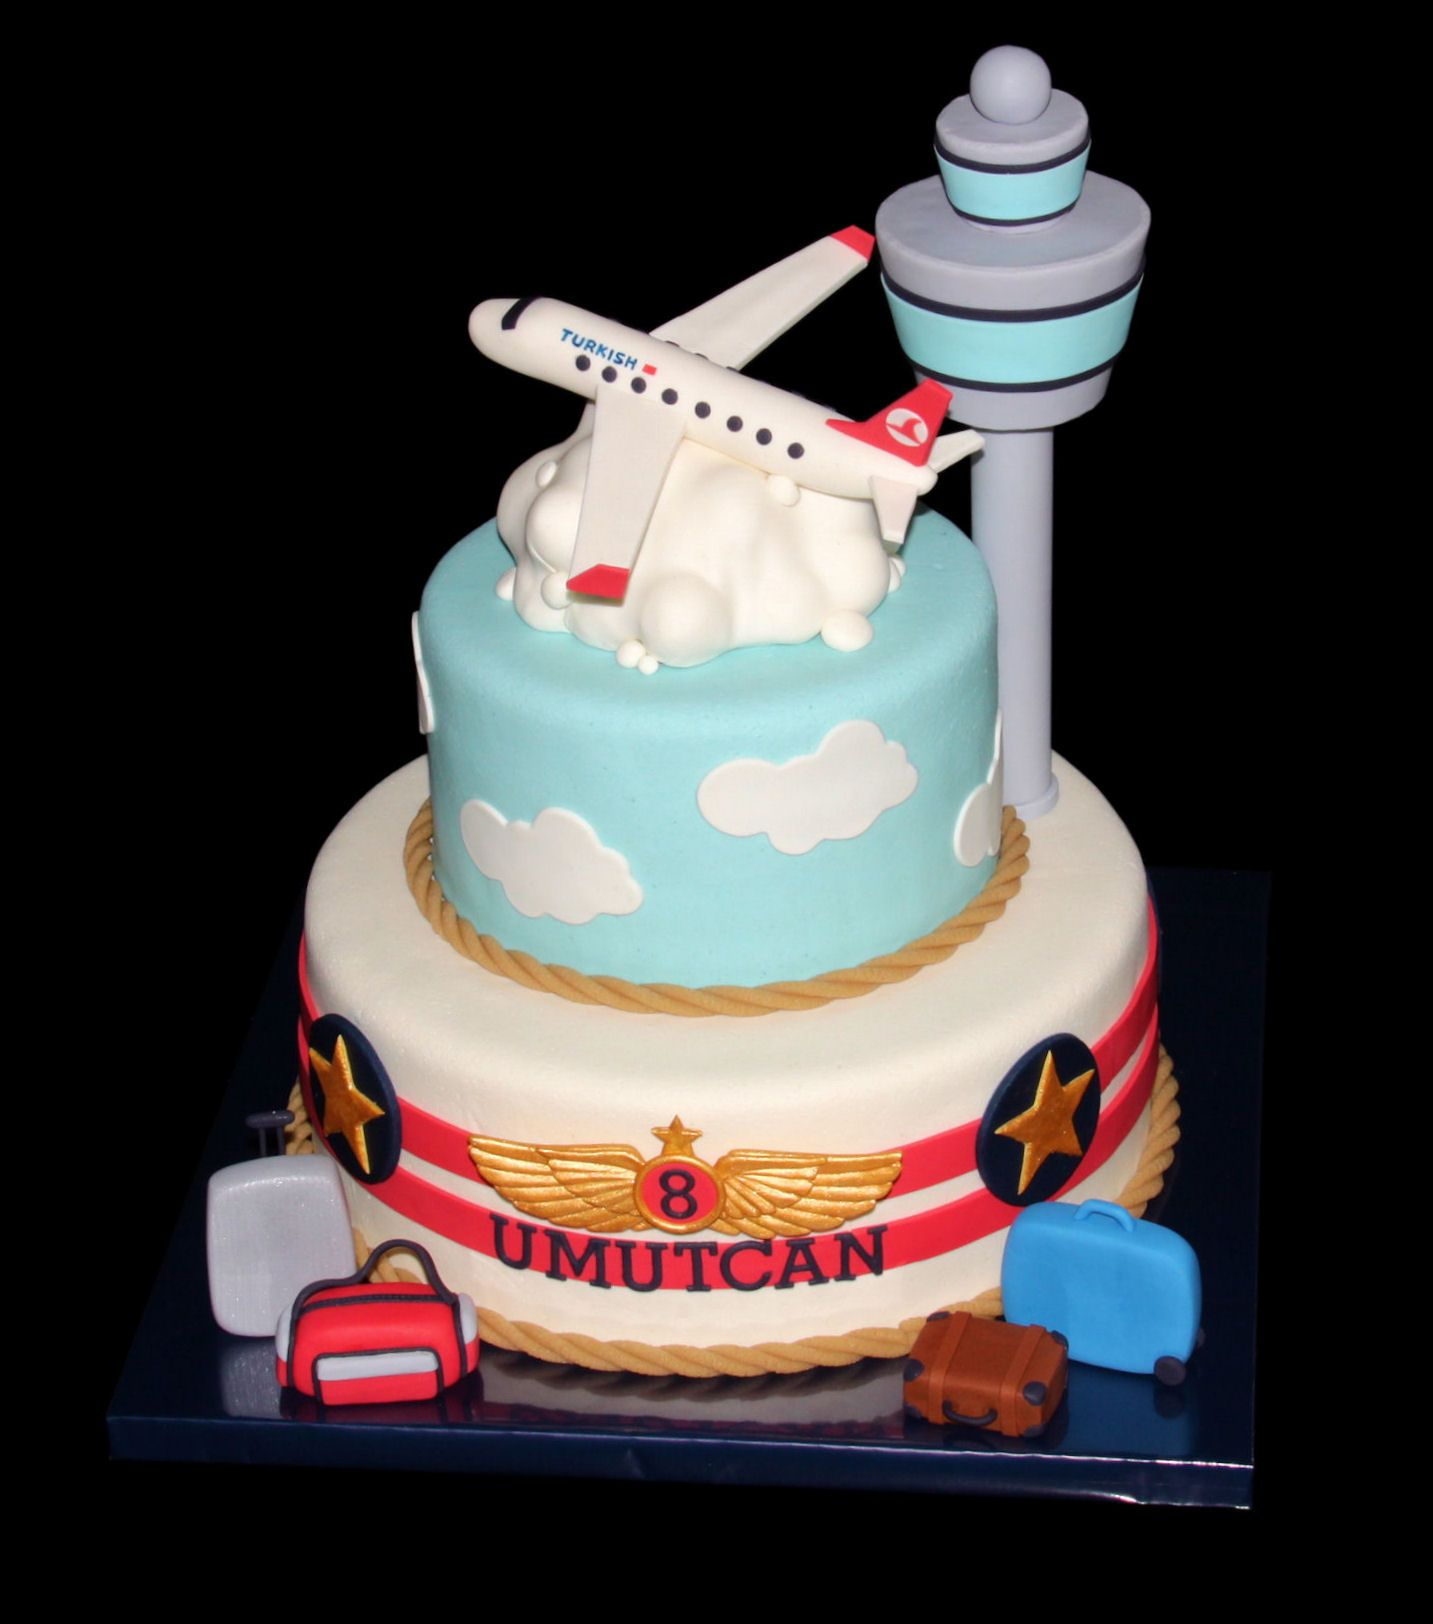 This is my favorite cake I LOVE it Not the luggage items around it